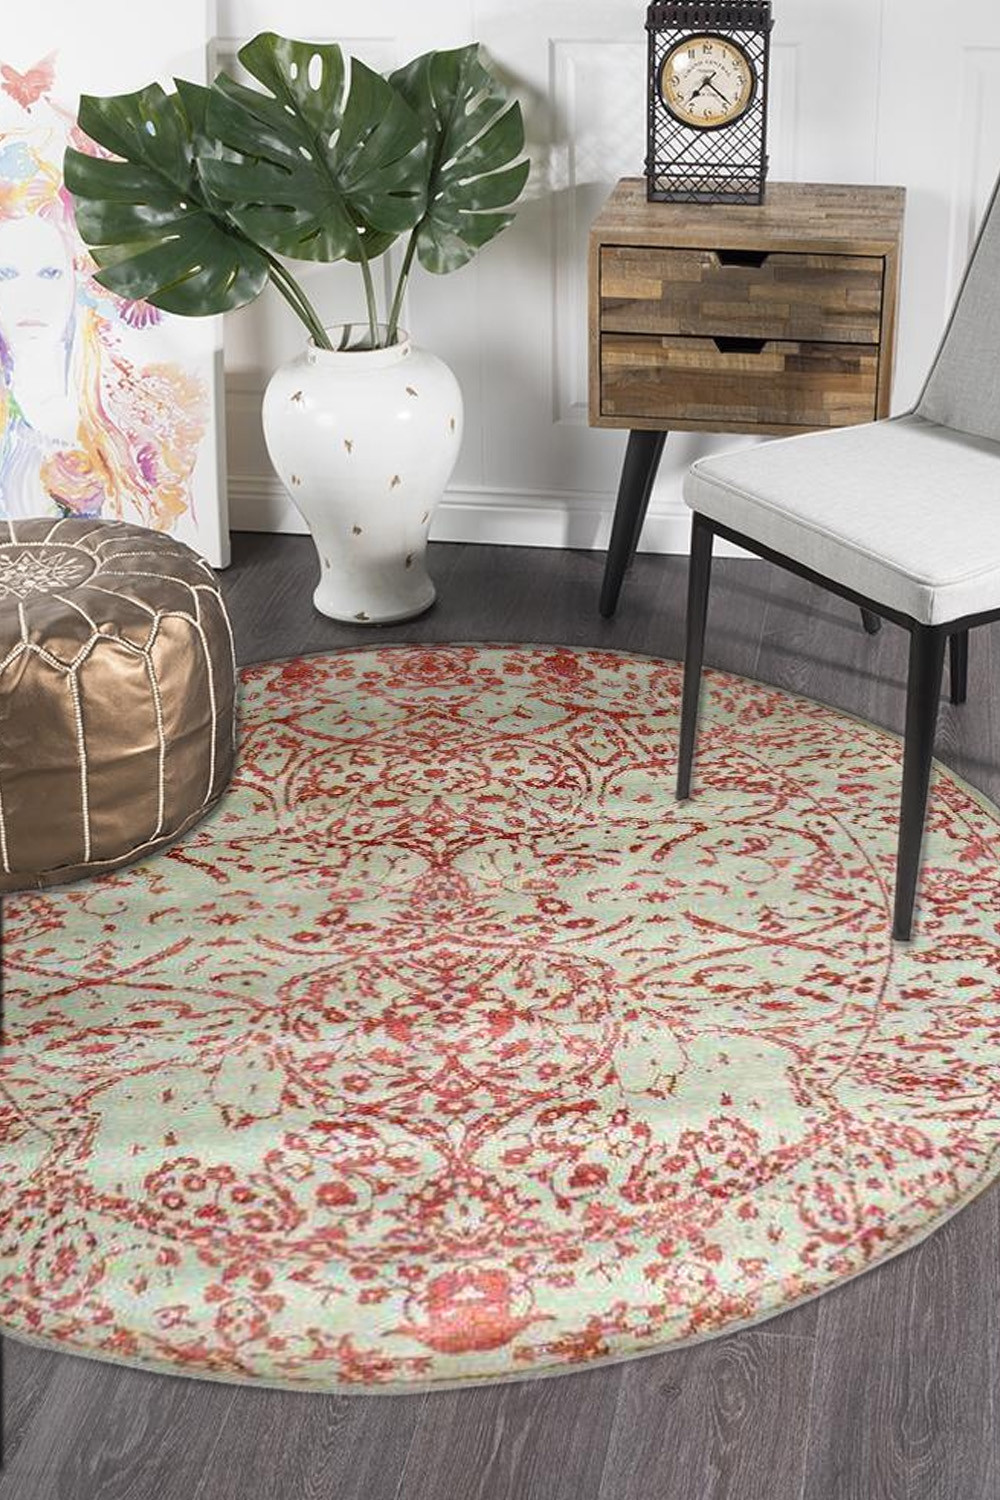 Purchase This Embossed Rust Round Woolen Carpet From Rugs